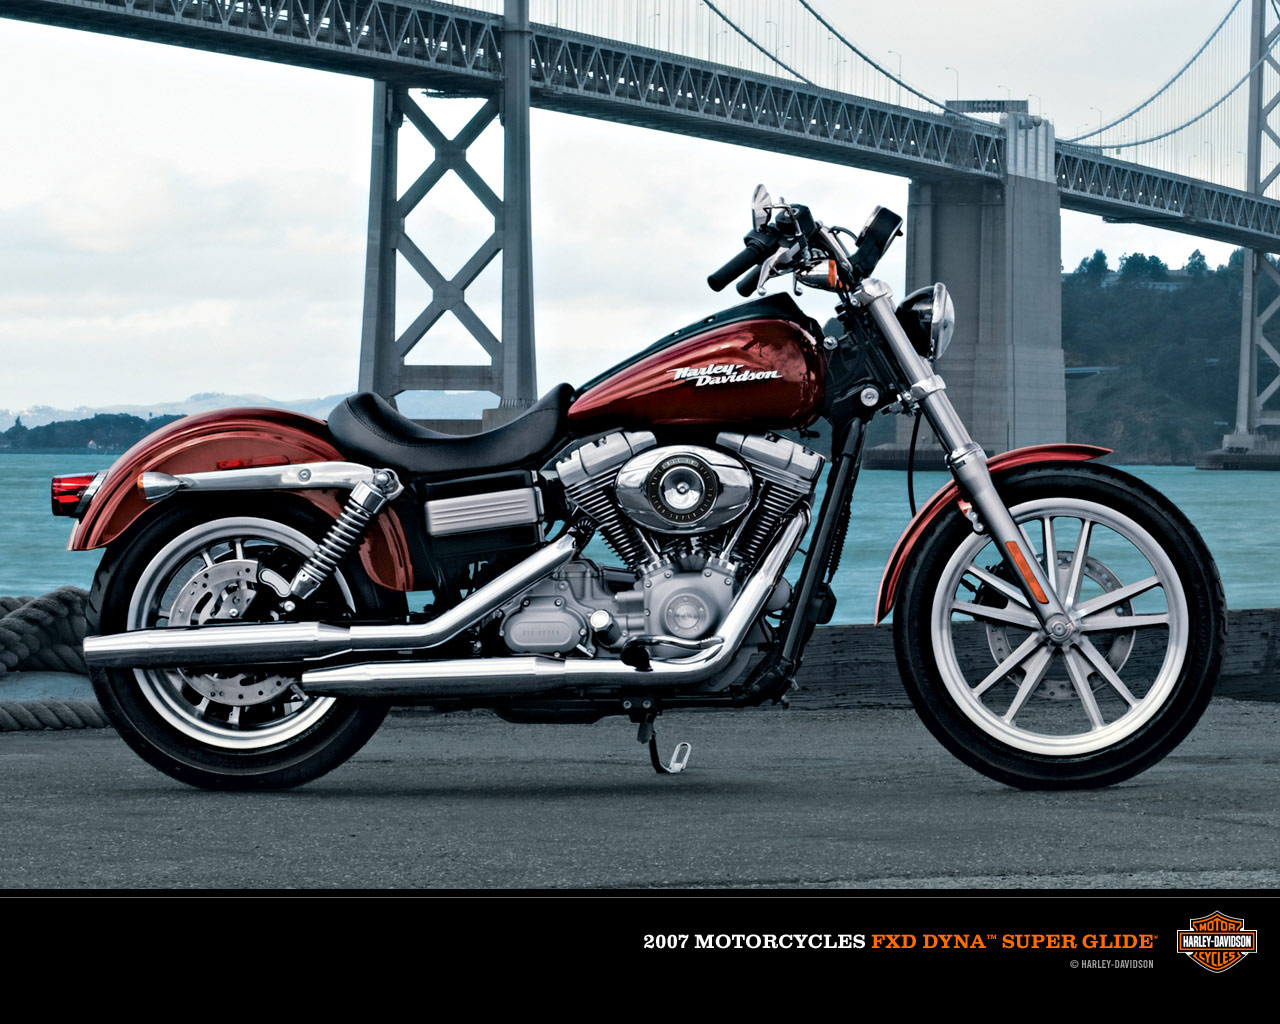 harley davidson super glide is a motorcycle model made by the harley